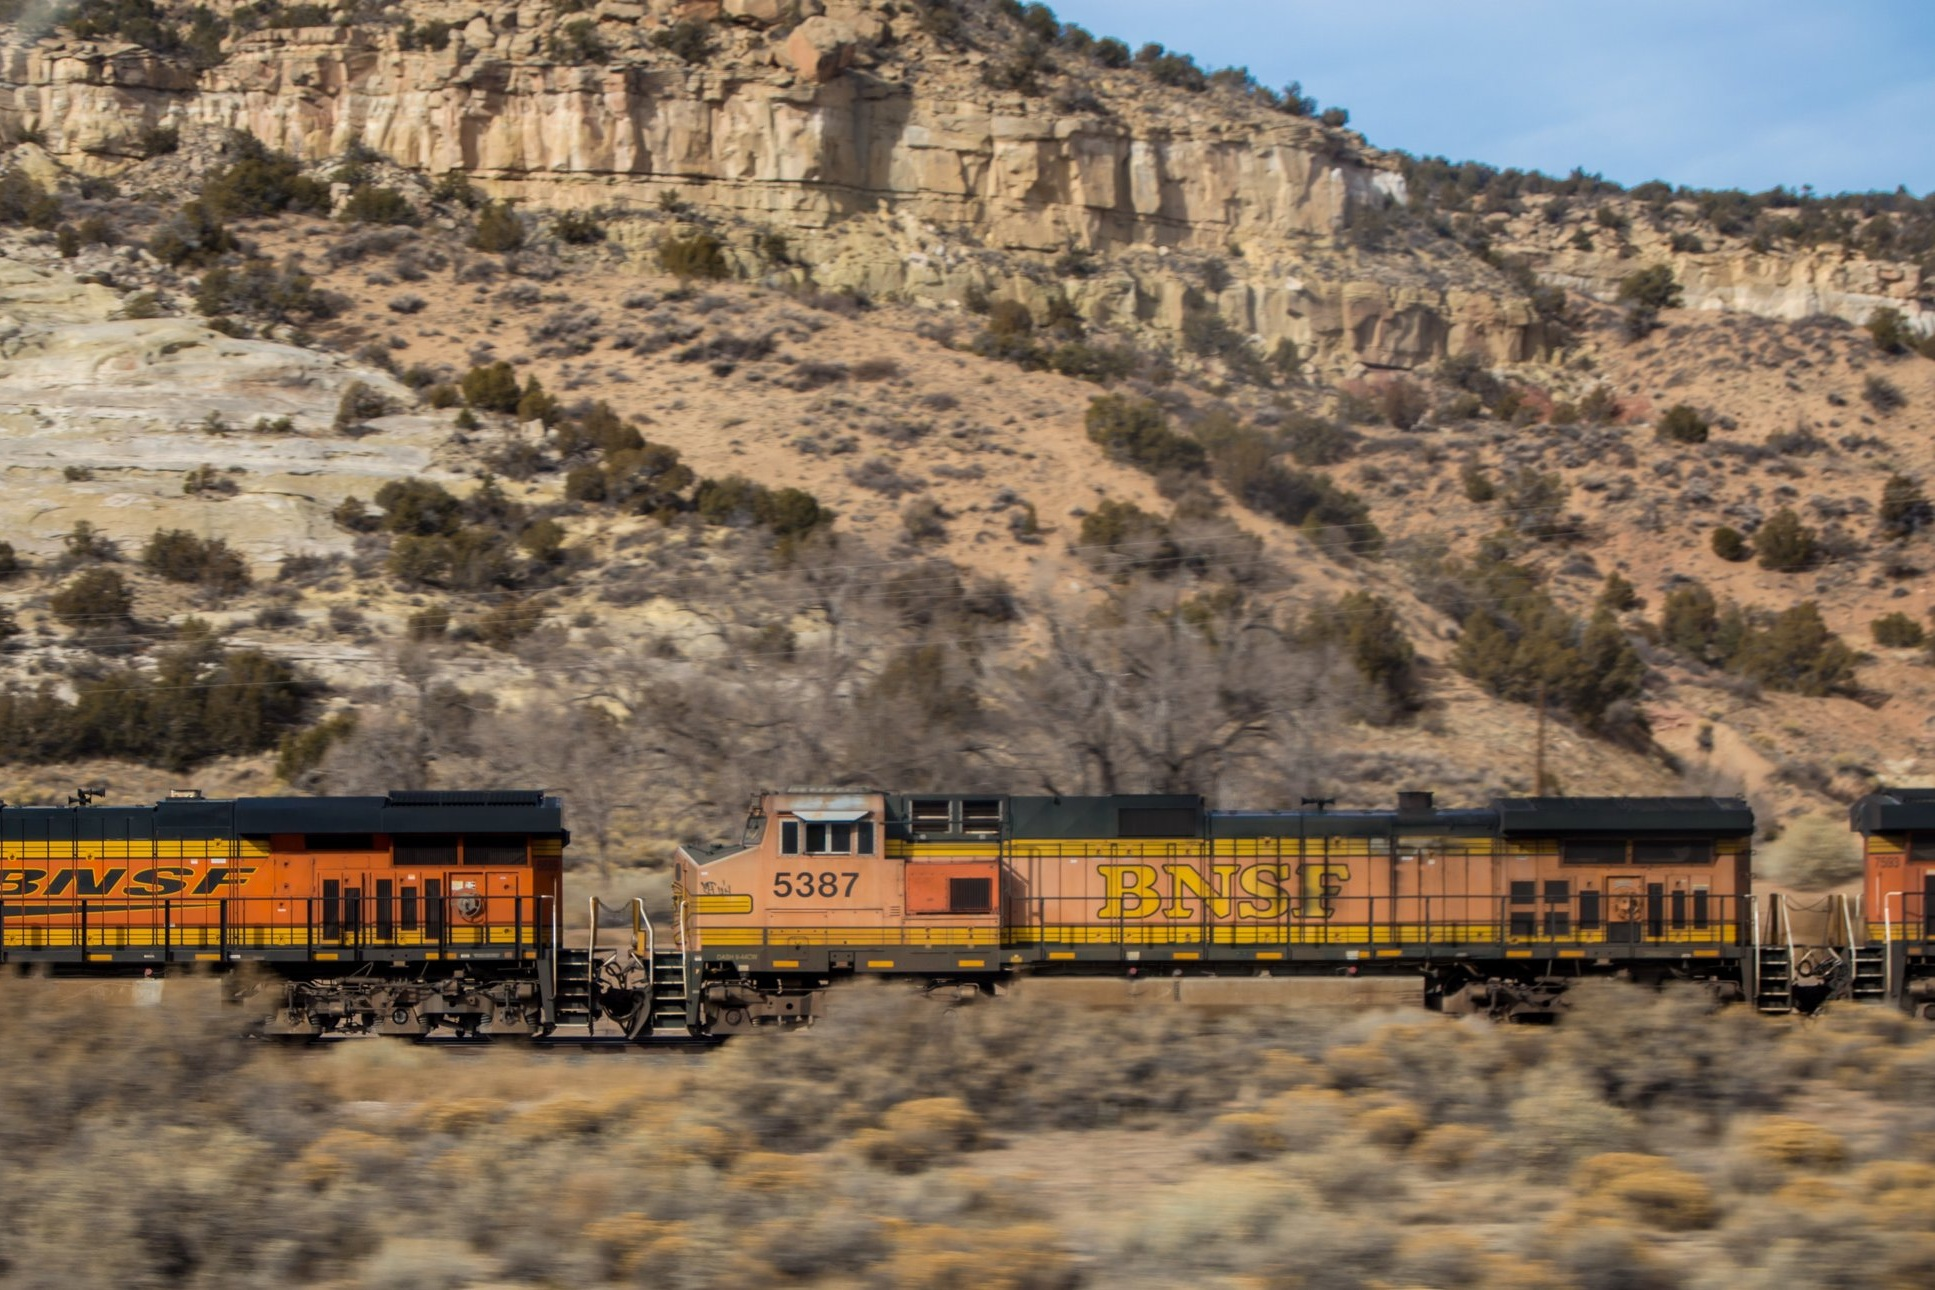 Verde Canyon Railroad - Postcard-perfect scenery is only part of the magic of Verde Canyon Railroad. The train provides a quiet sanctuary as it travels a leisurely four hours from the charming Clarkdale depot through the red rock Sedona area.